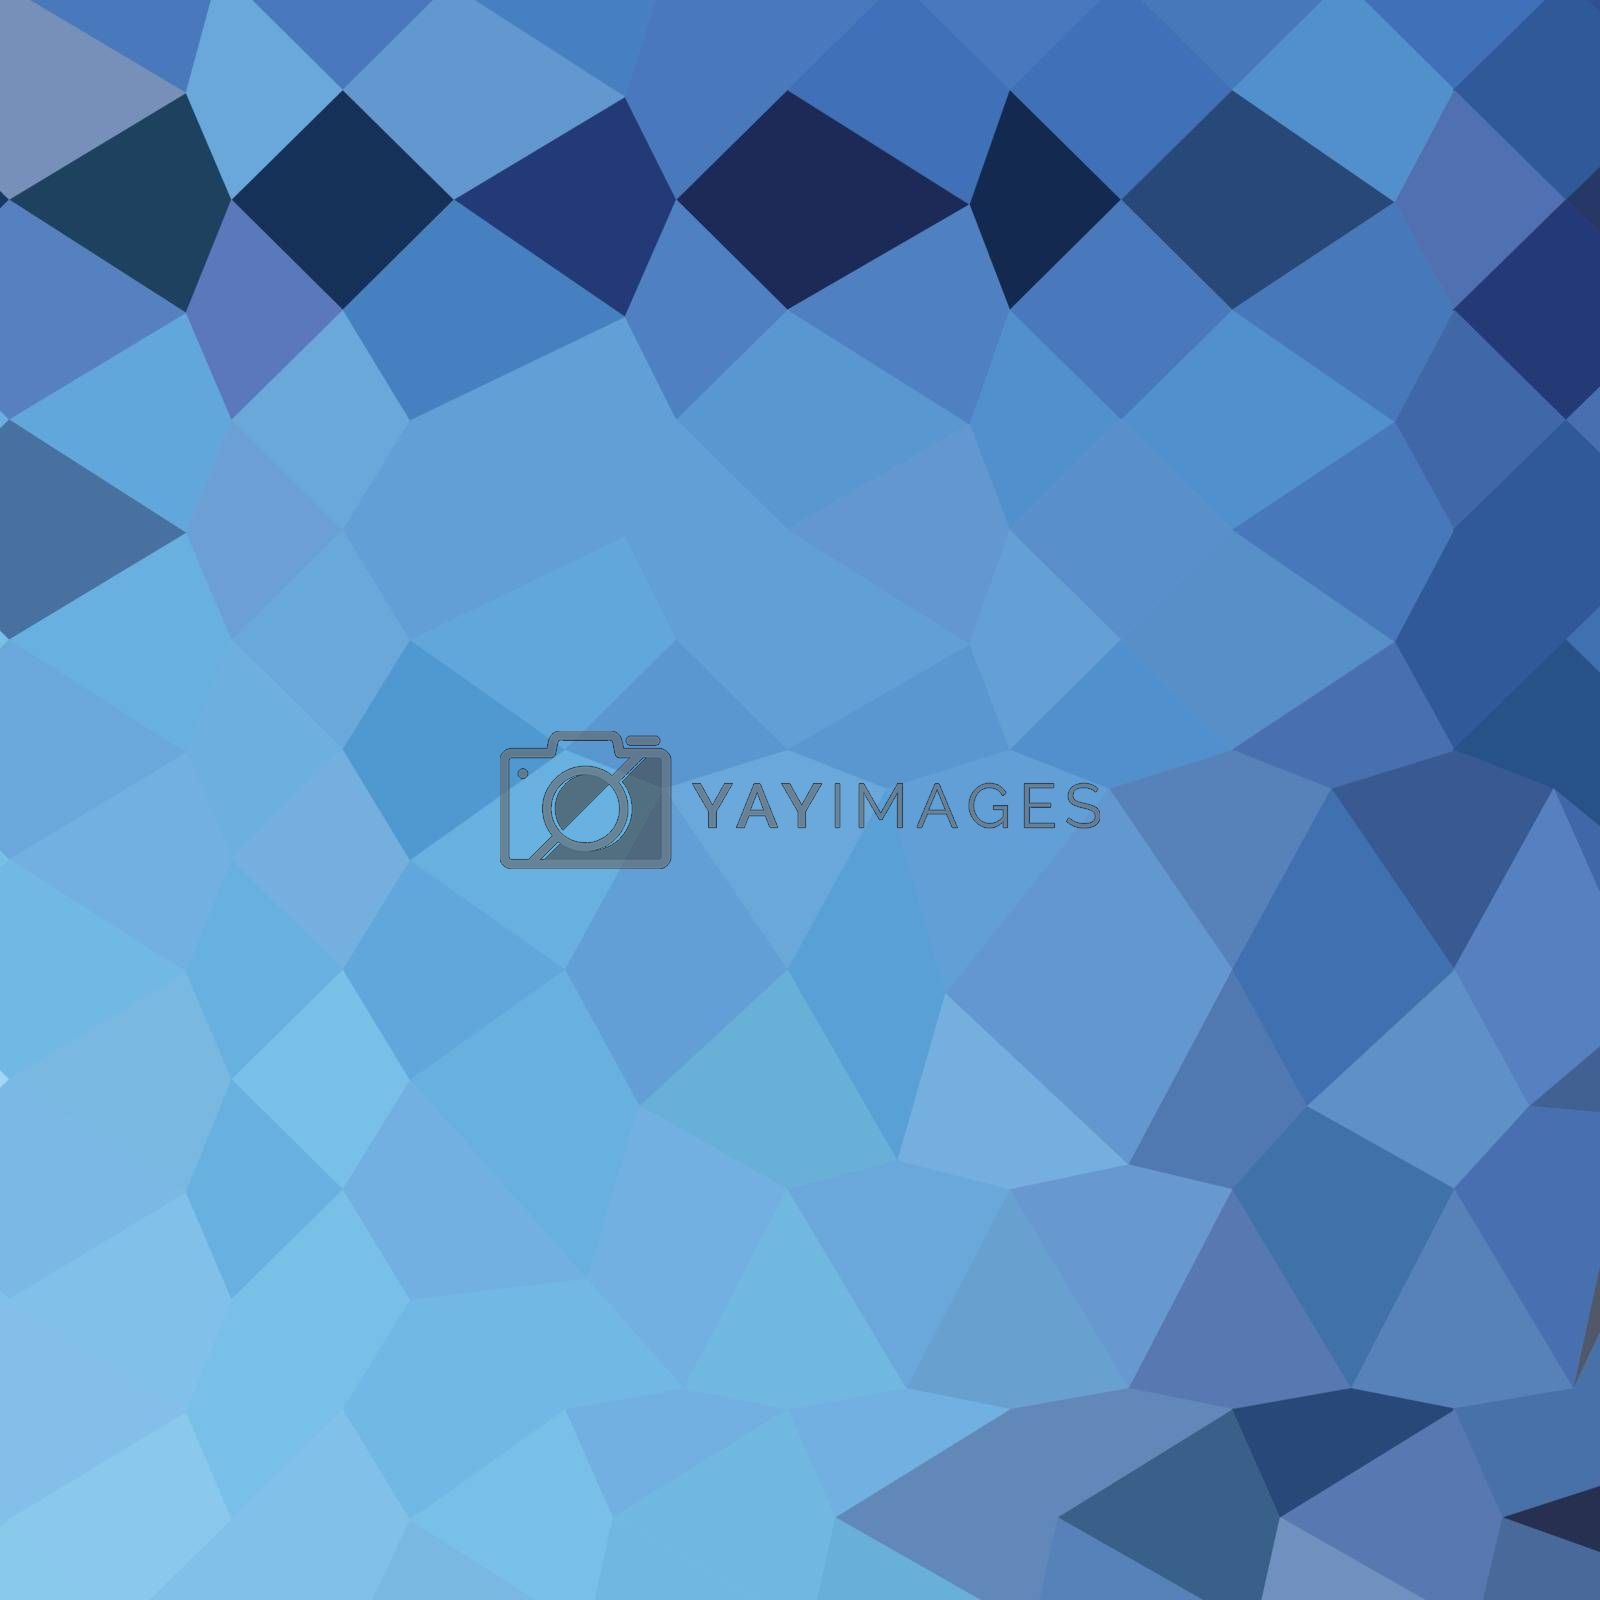 Low polygon style illustration of a blizzard blue abstract geometric background.